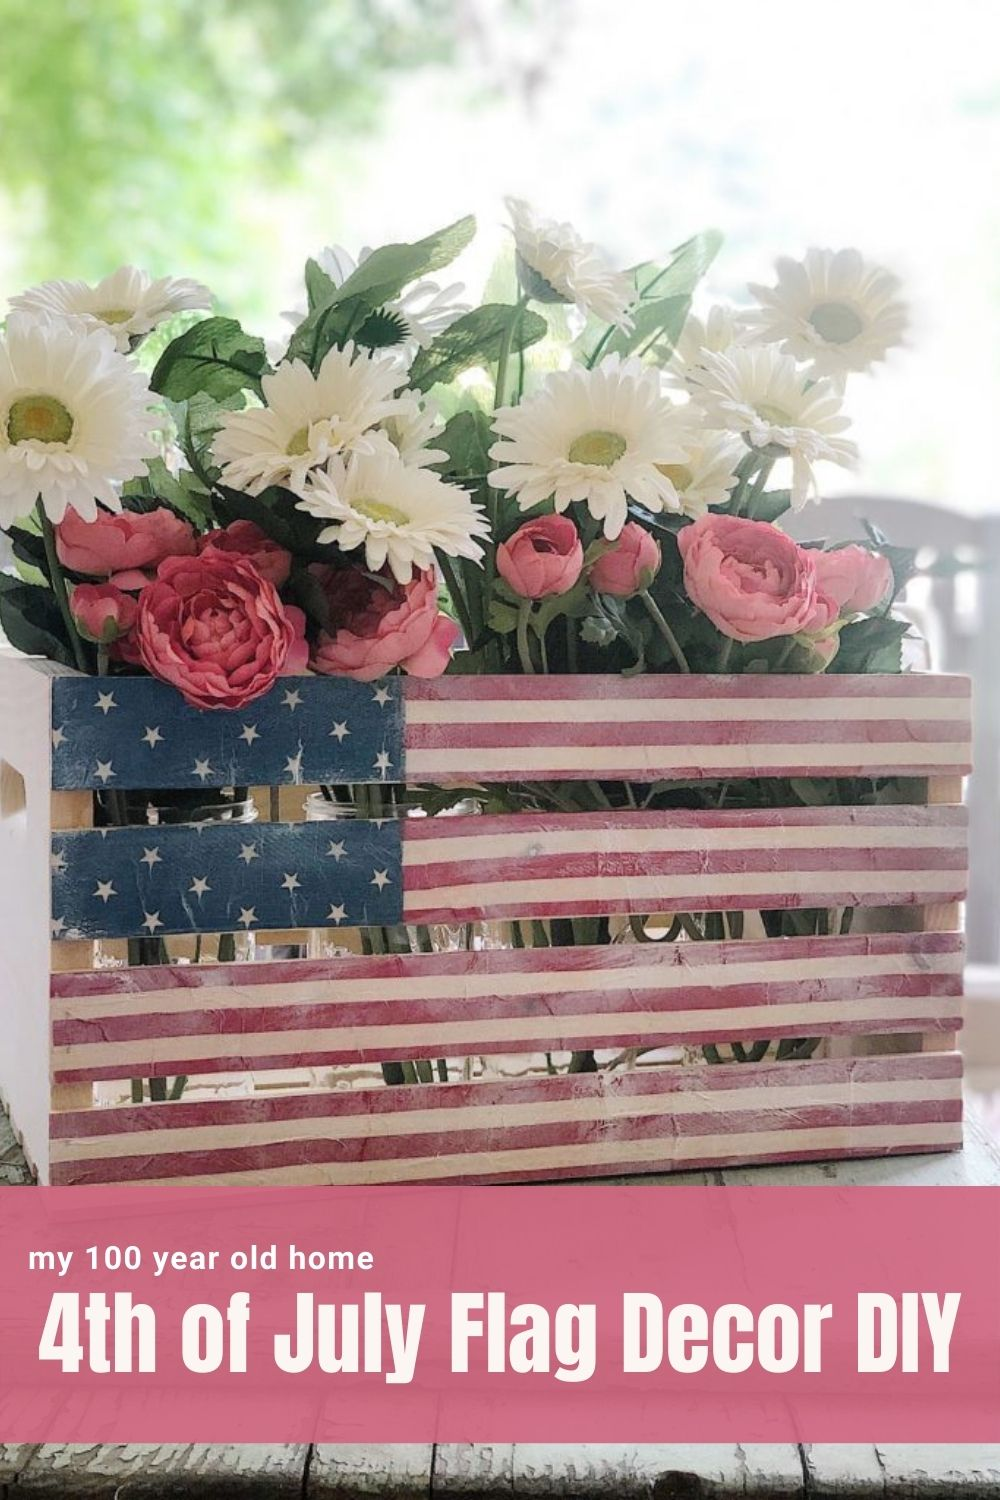 The Fourth of July is right around the corner but you still have time to make this wonderful the 4th of July flag wooden crate.